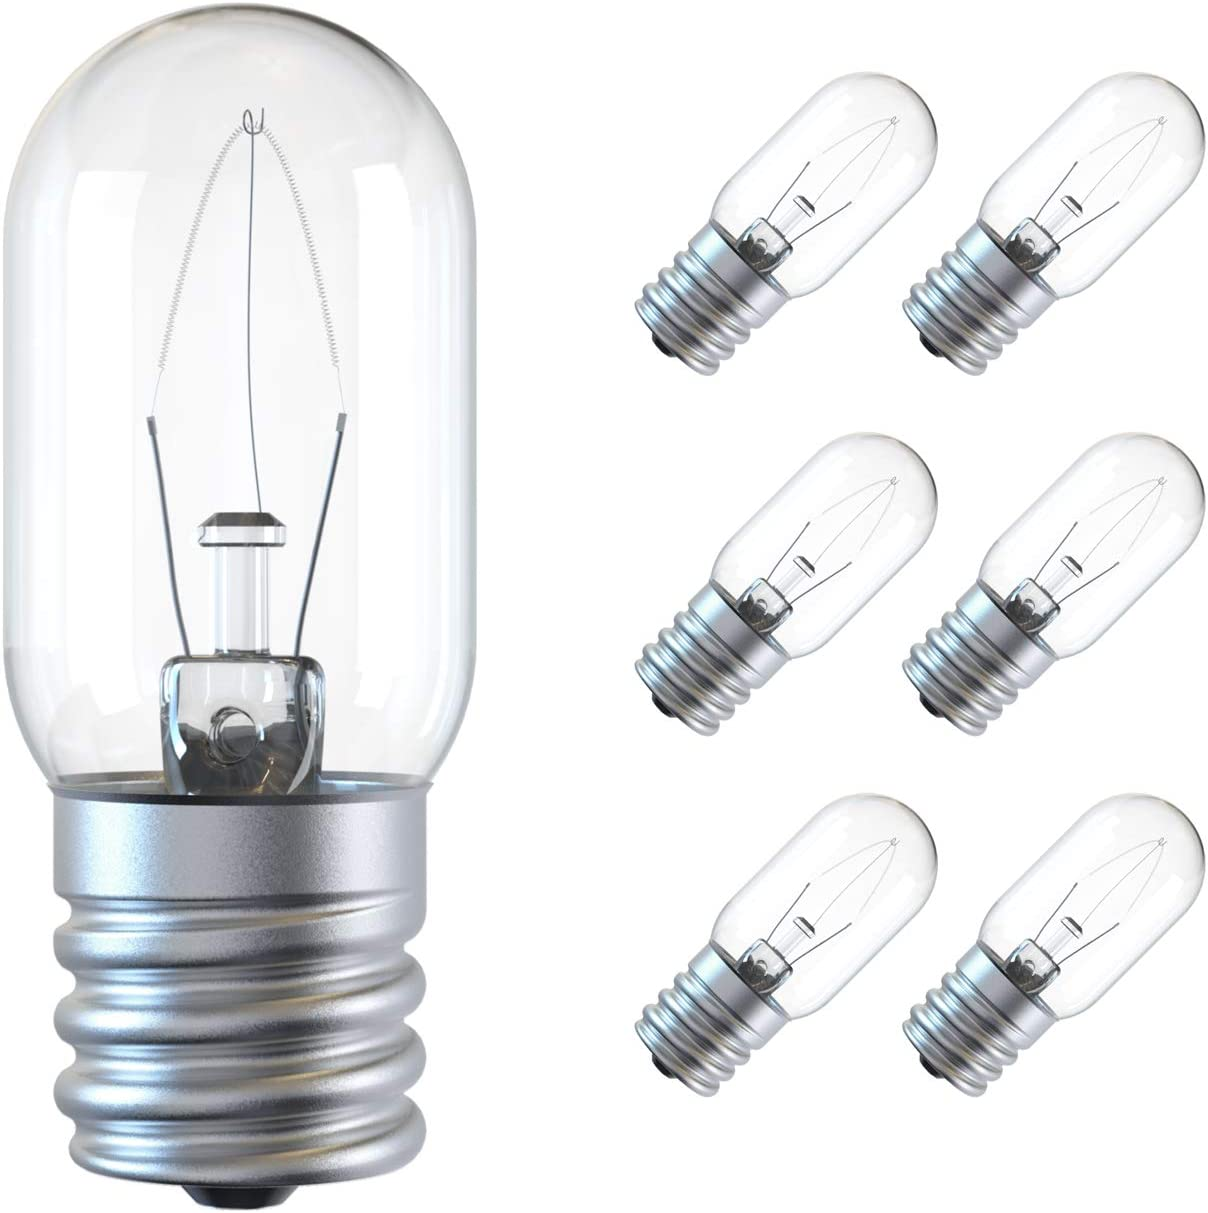 Appliance Light Bulb, 125V 30W Microwave Light Bulb Replacement Parts E17 Base Fits for Most GE Whirlpool Oven, Clear Incandescent T8 Oven Light Lamp(6 Pack)